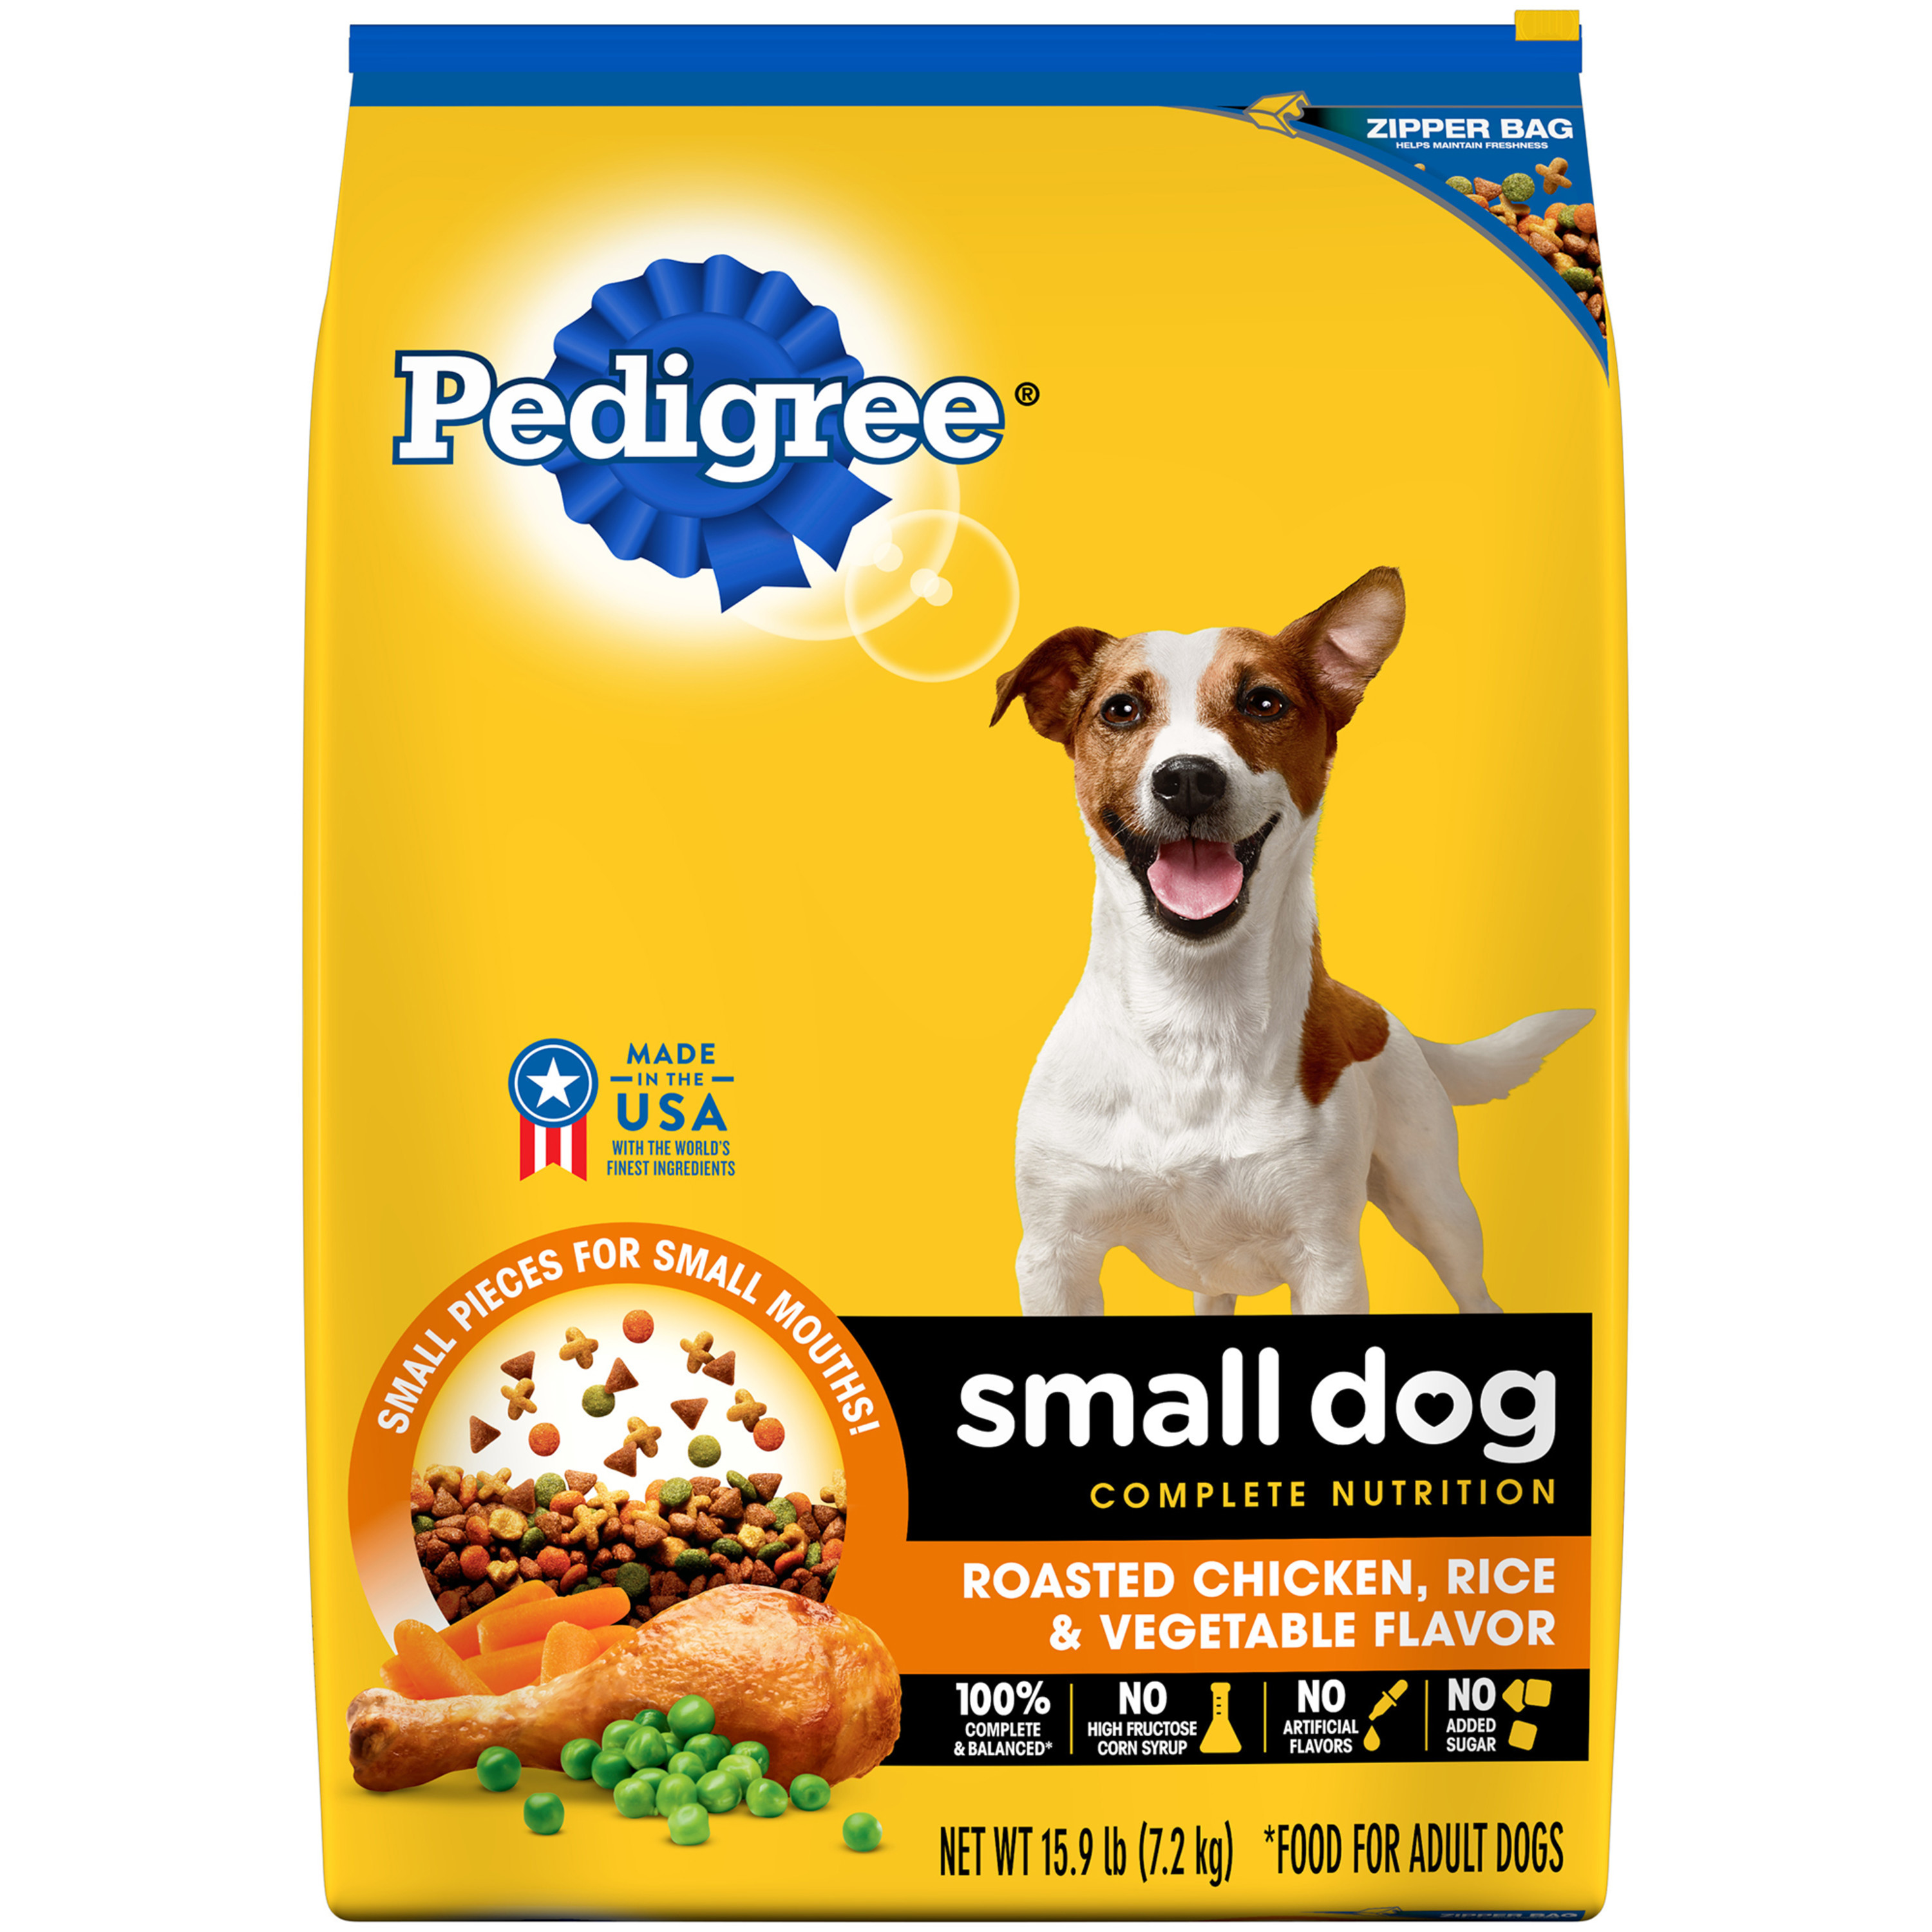 PEDIGREE Small Dog Adult Complete Nutrition Dry Dog Food, Roasted Chicken, Rice & Vegetable Flavor, 15.9 Lb